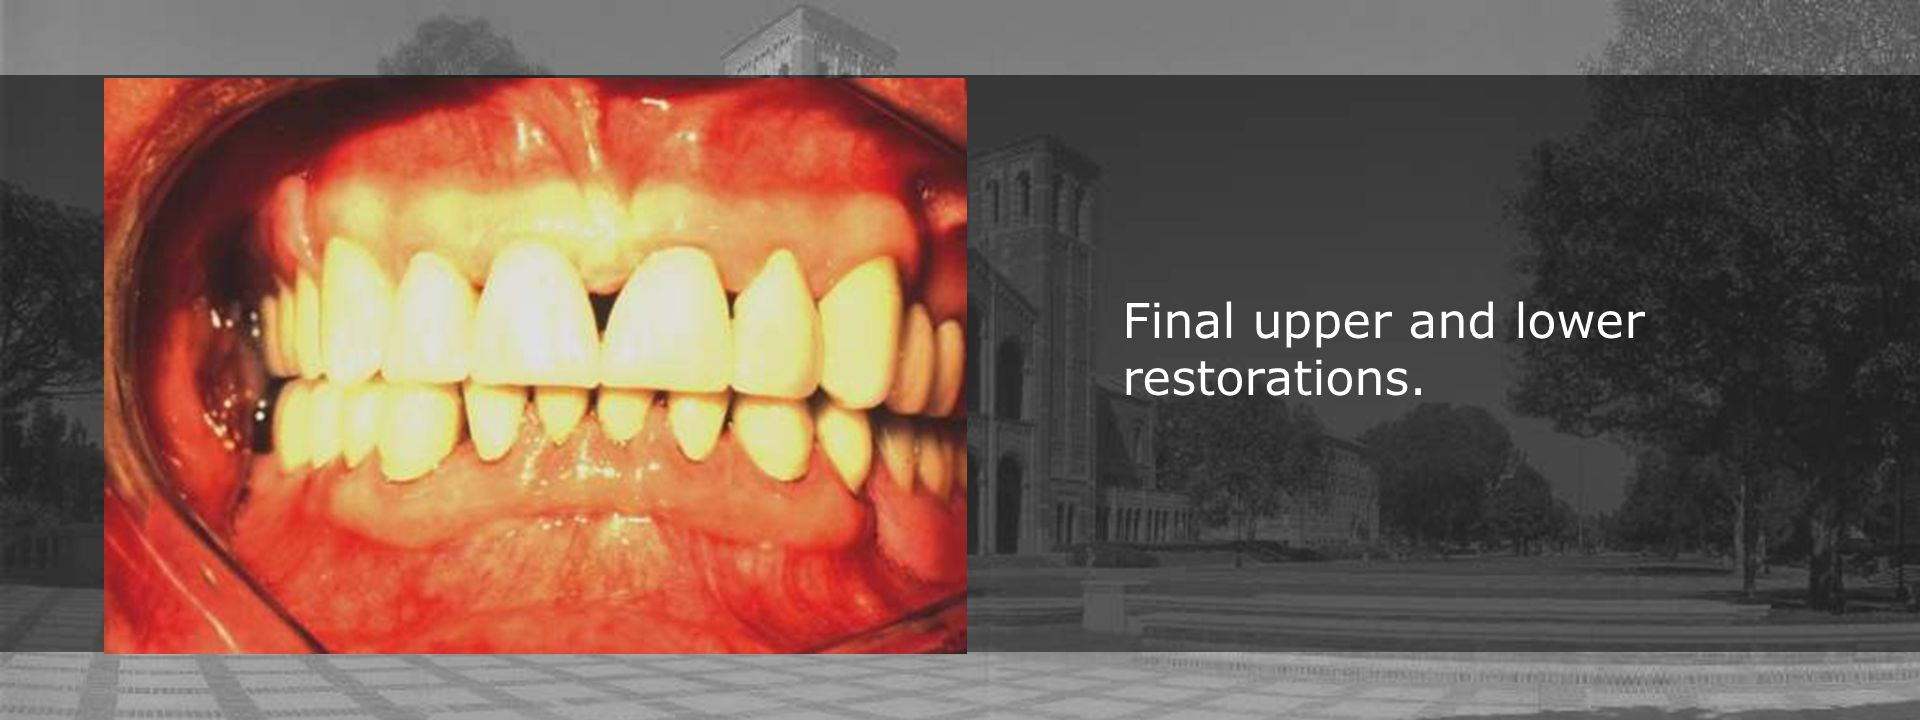 Final upper and lower restorations.